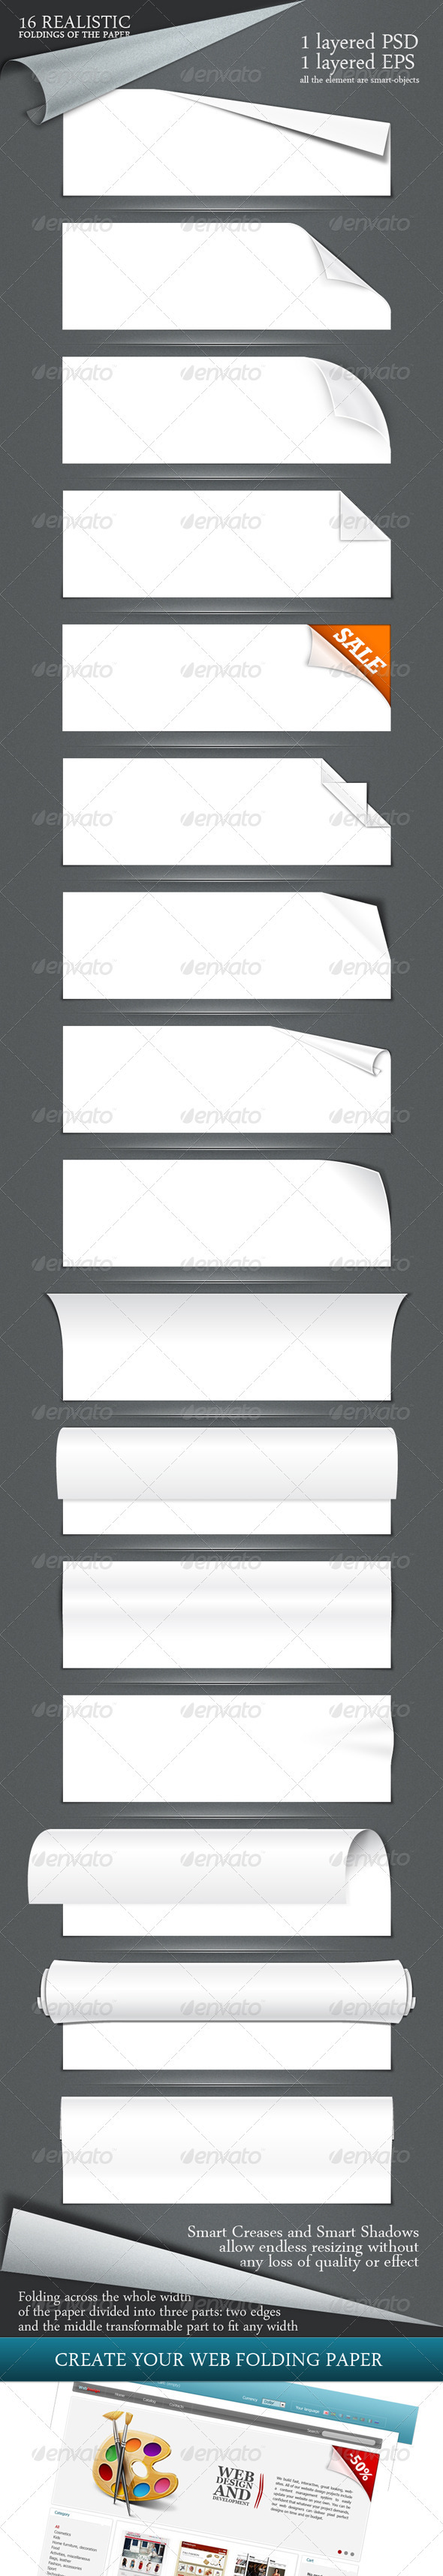 16 realistic folding of the paper PSD + EPS - Miscellaneous Web Elements